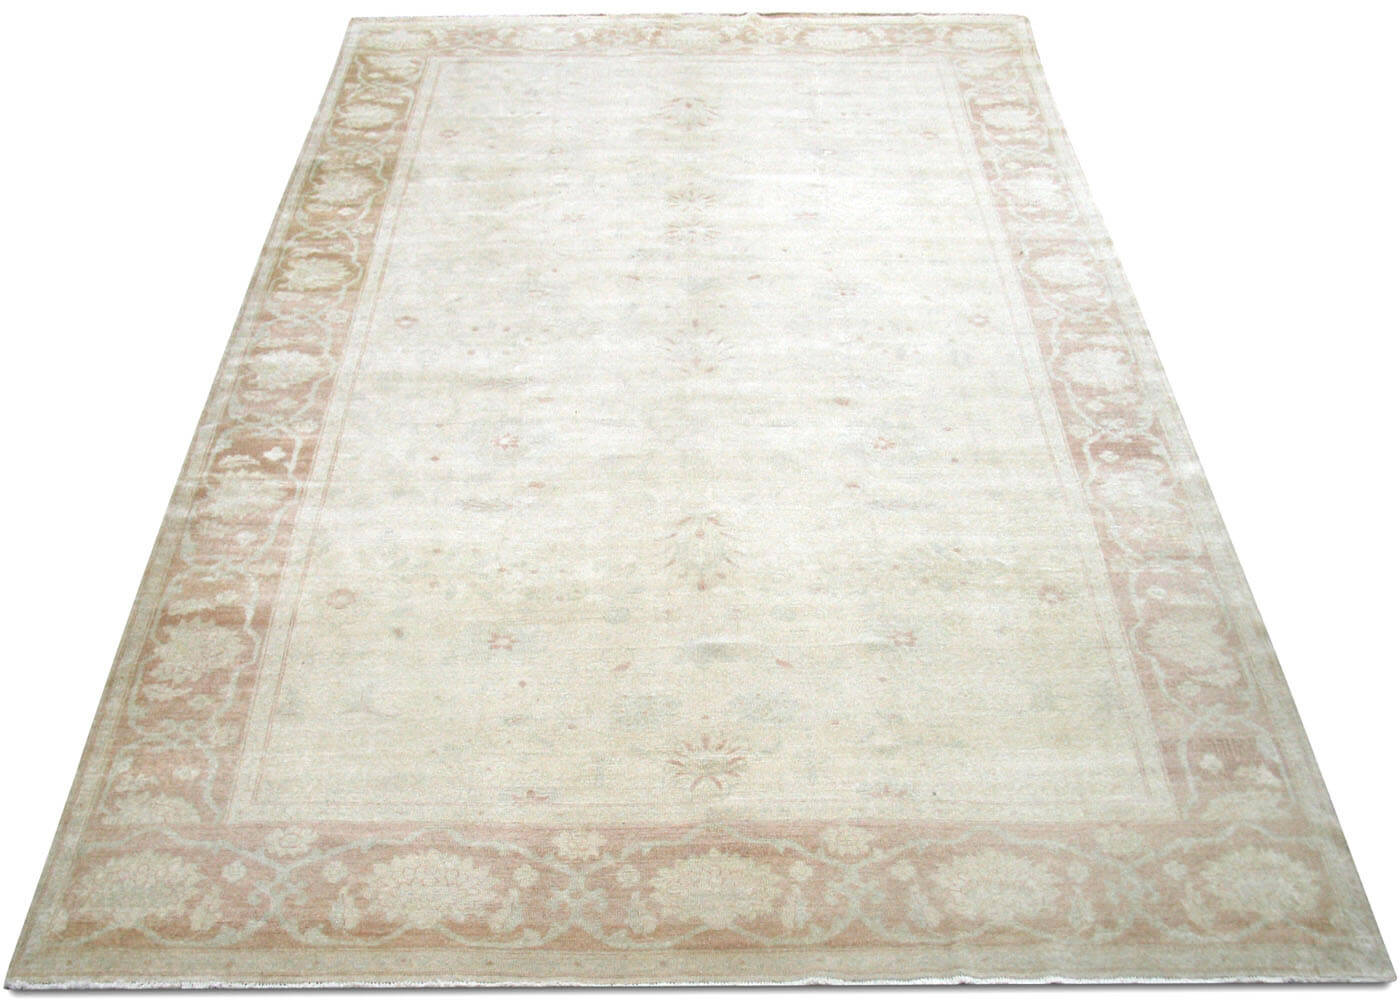 "Recently Woven Egyptian Sultanabad Carpet - 10'2"" x 13'5"""